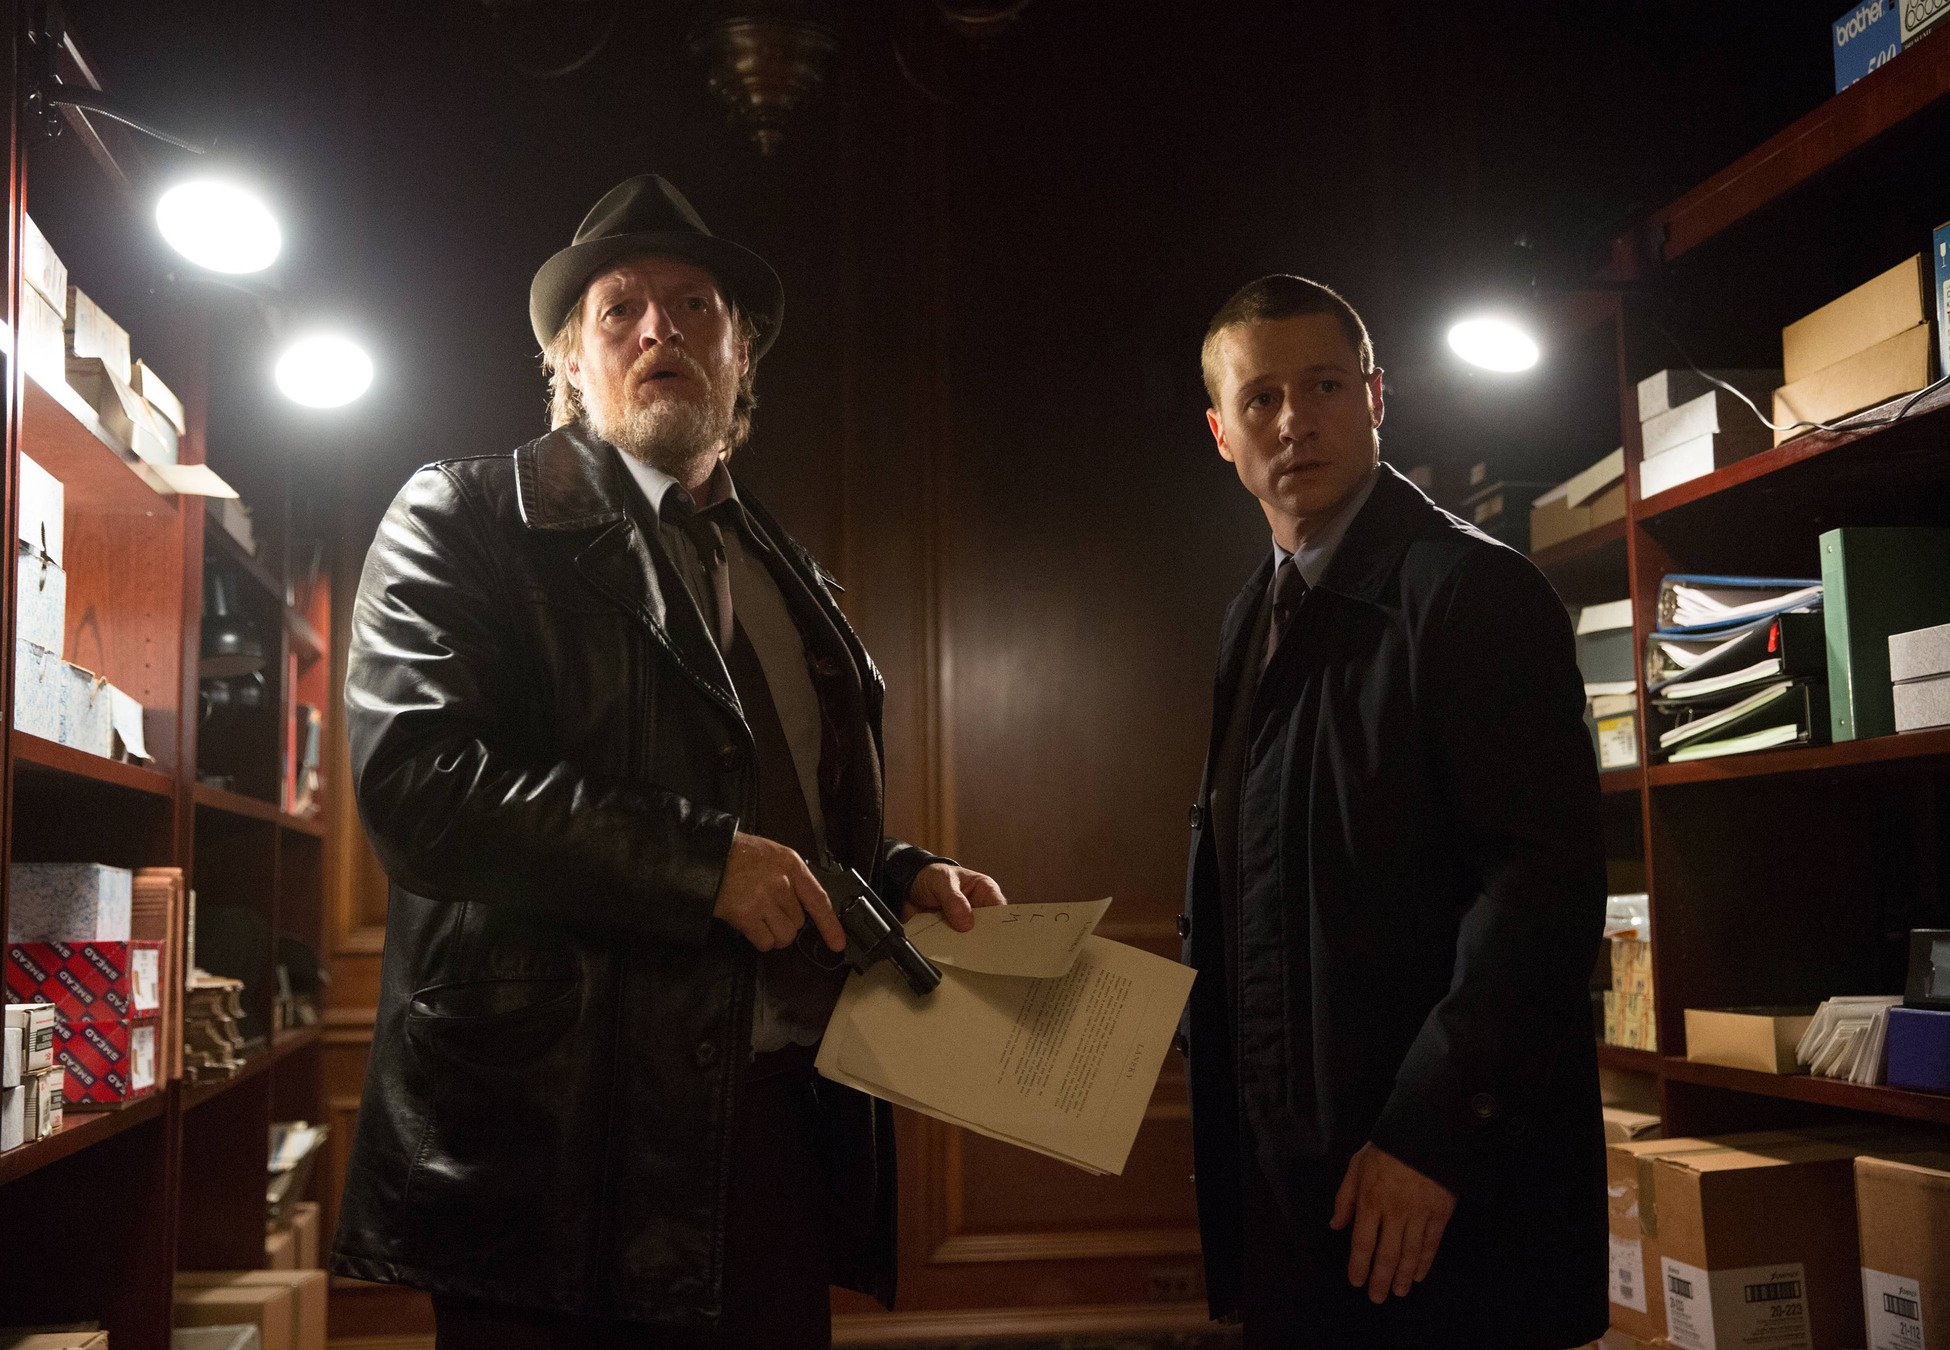 """GOTHAM: Detectives Harvey Bullock (Donal Logue, L) and James Gordon (Ben McKenzie, R) find a piece of evidence in the """"Arkham"""" episode of GOTHAM airing Monday, Oct. 13 (8:00-9:00 PM ET/PT) on FOX. ©2014 Fox Broadcasting Co. Cr: Jessica Miglio/FOX"""